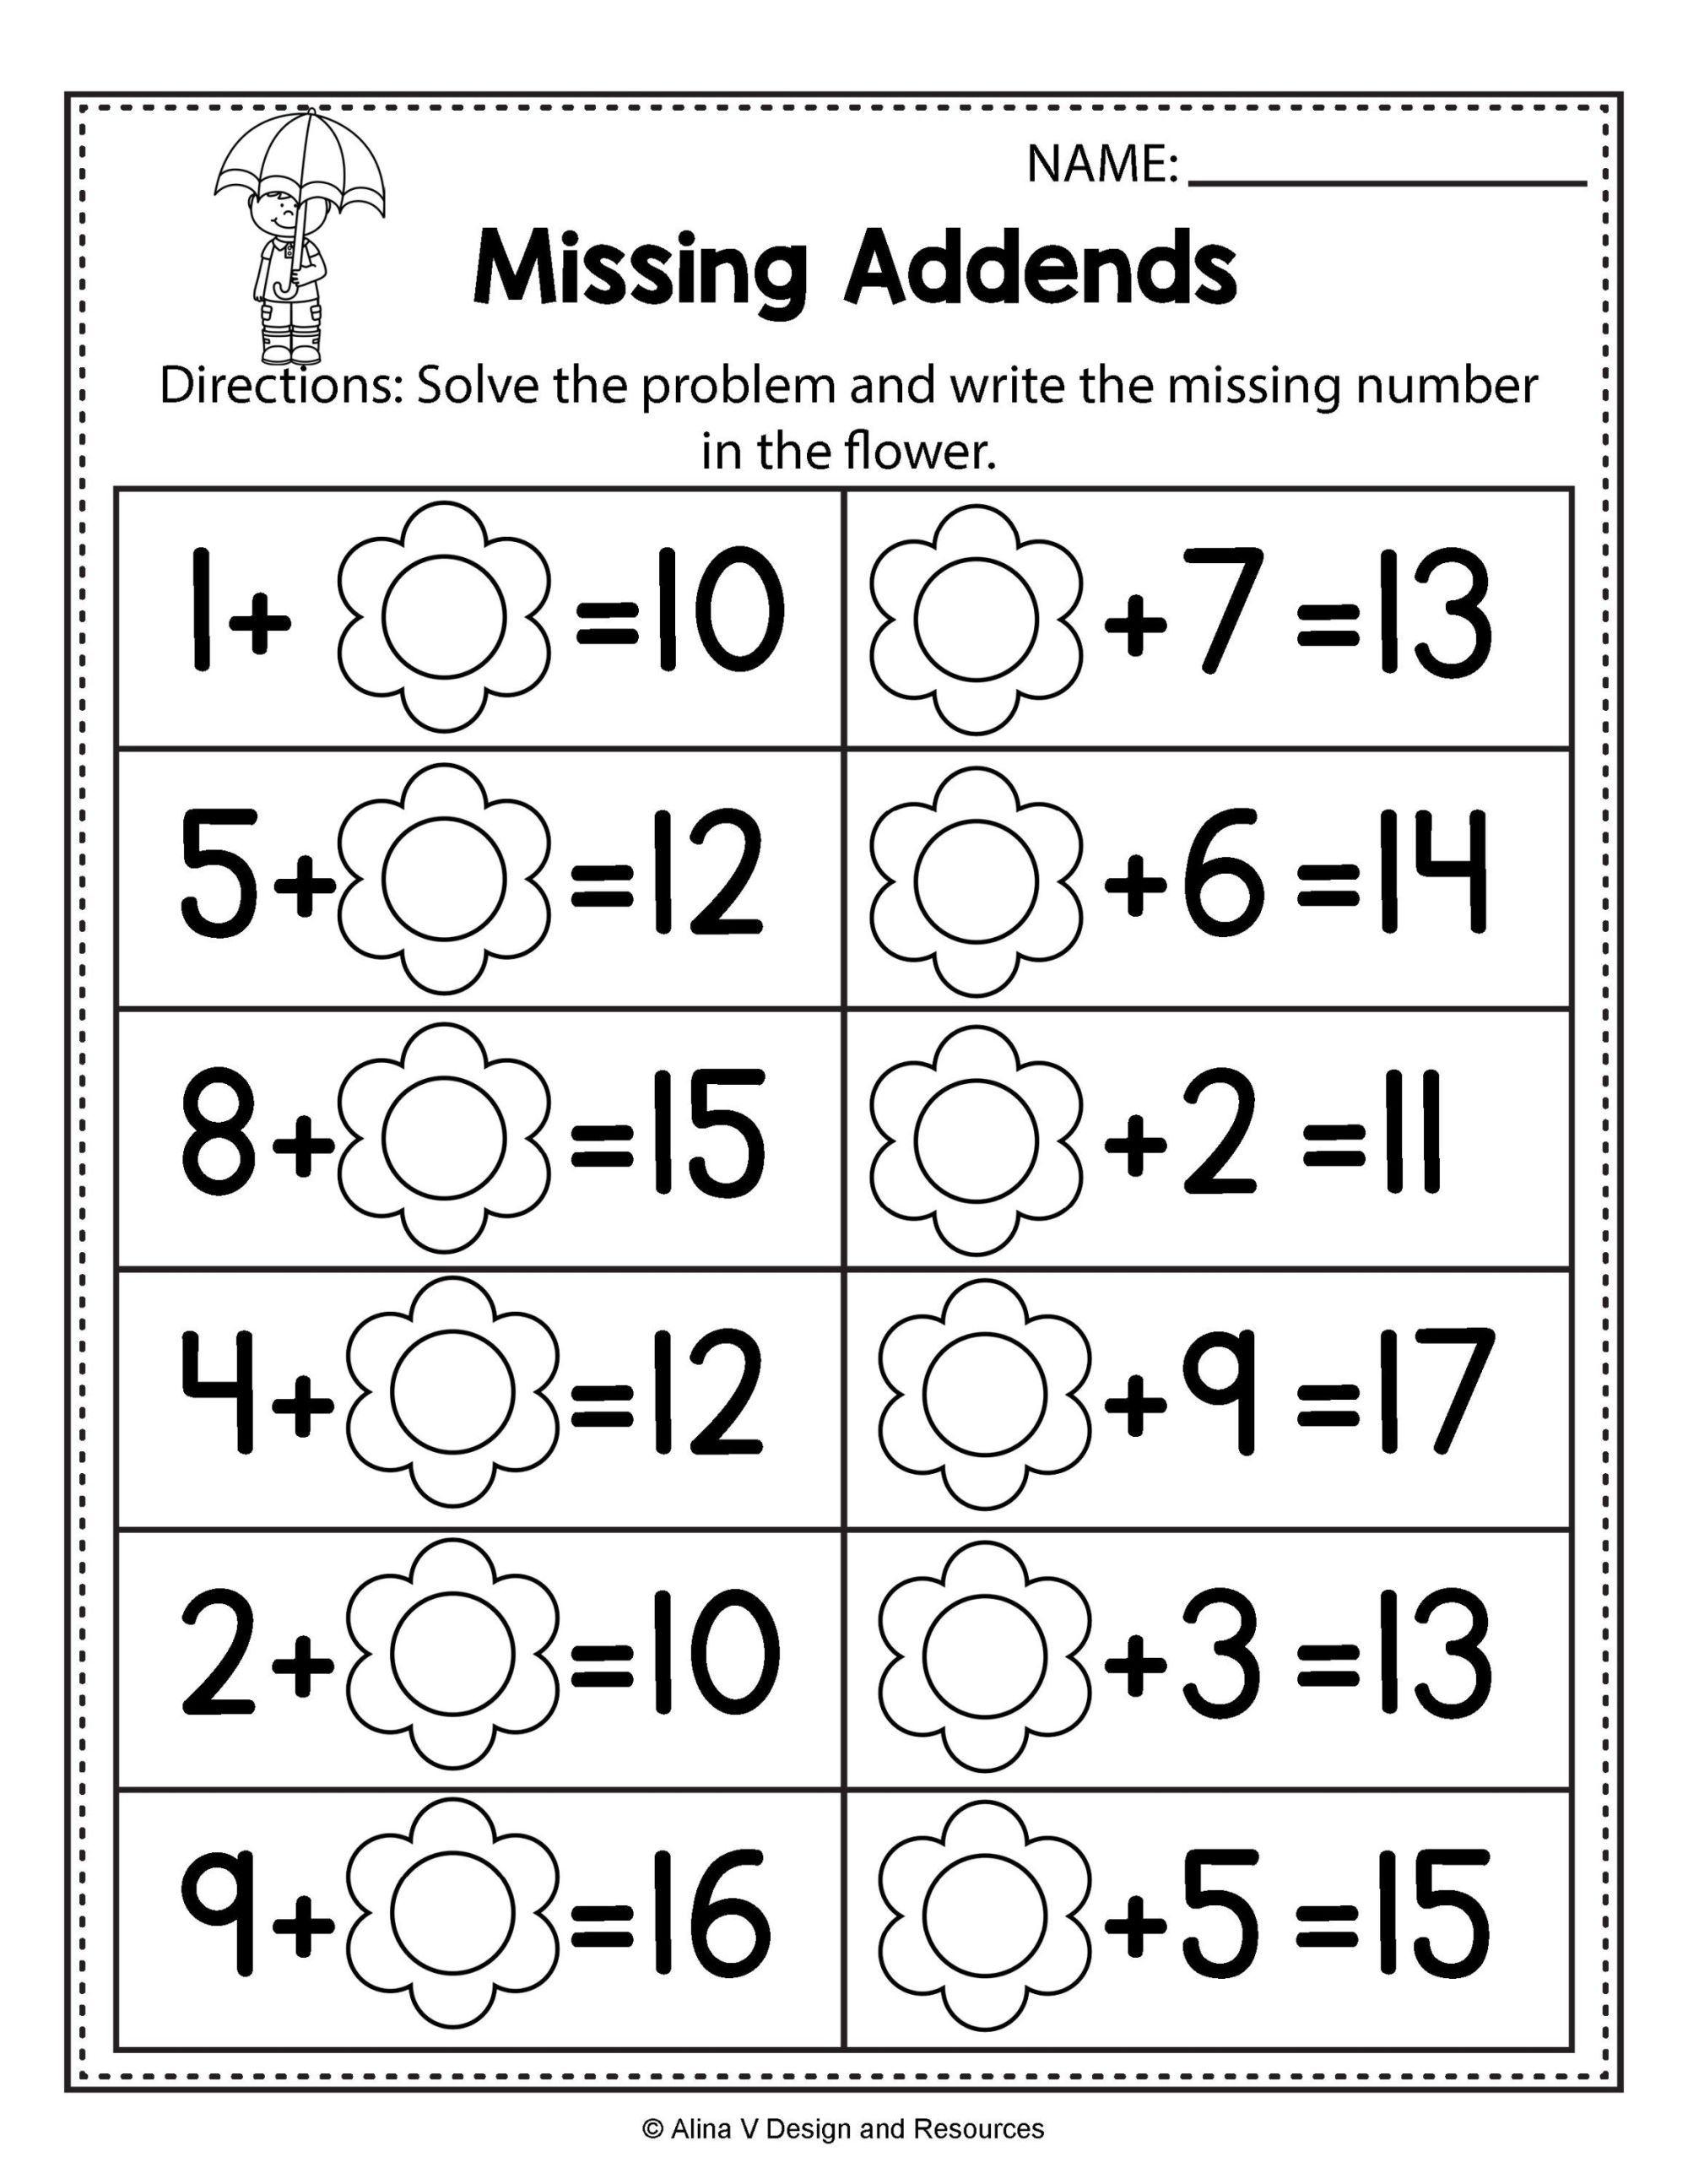 hight resolution of 17 Best 1st Grade Math Worksheets For Fun Times images on Best Worksheets  Collection